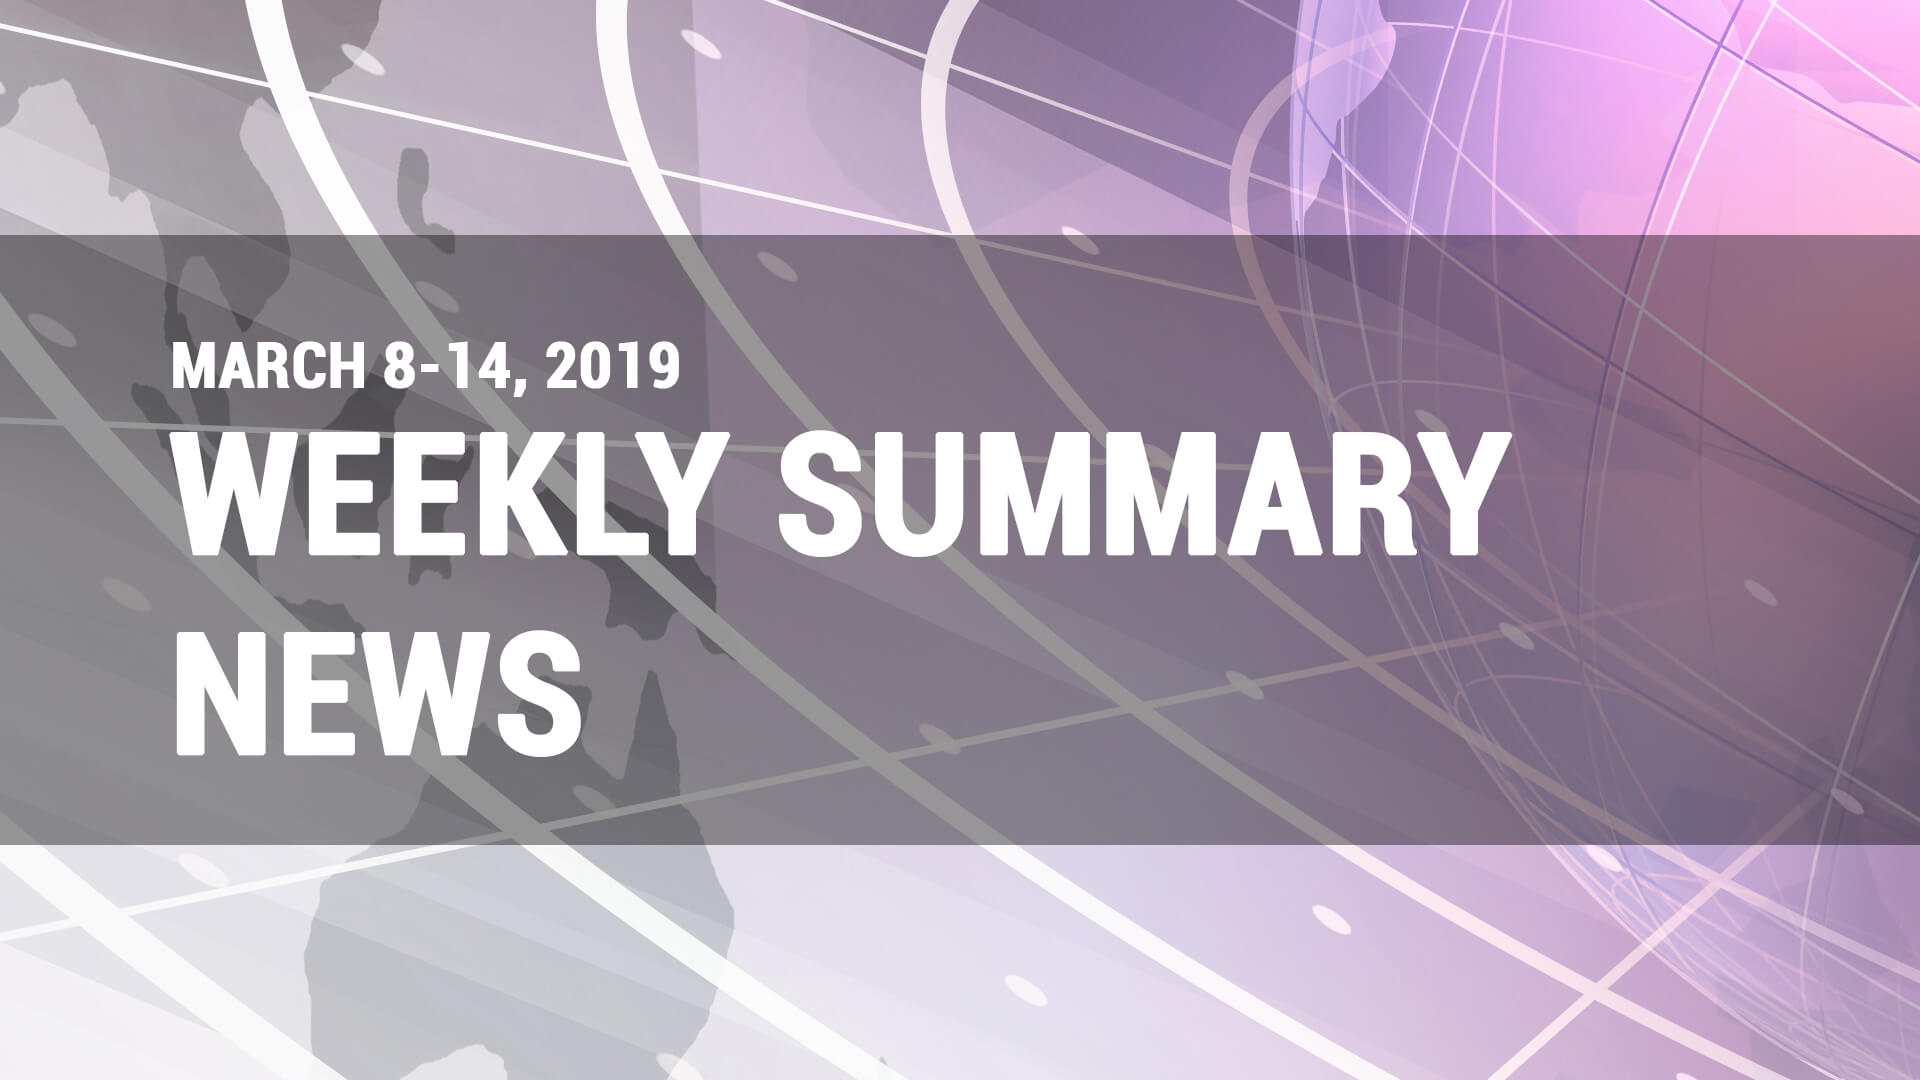 Weekly News Summary for March 8-14, 2019 - Finance Brokerage